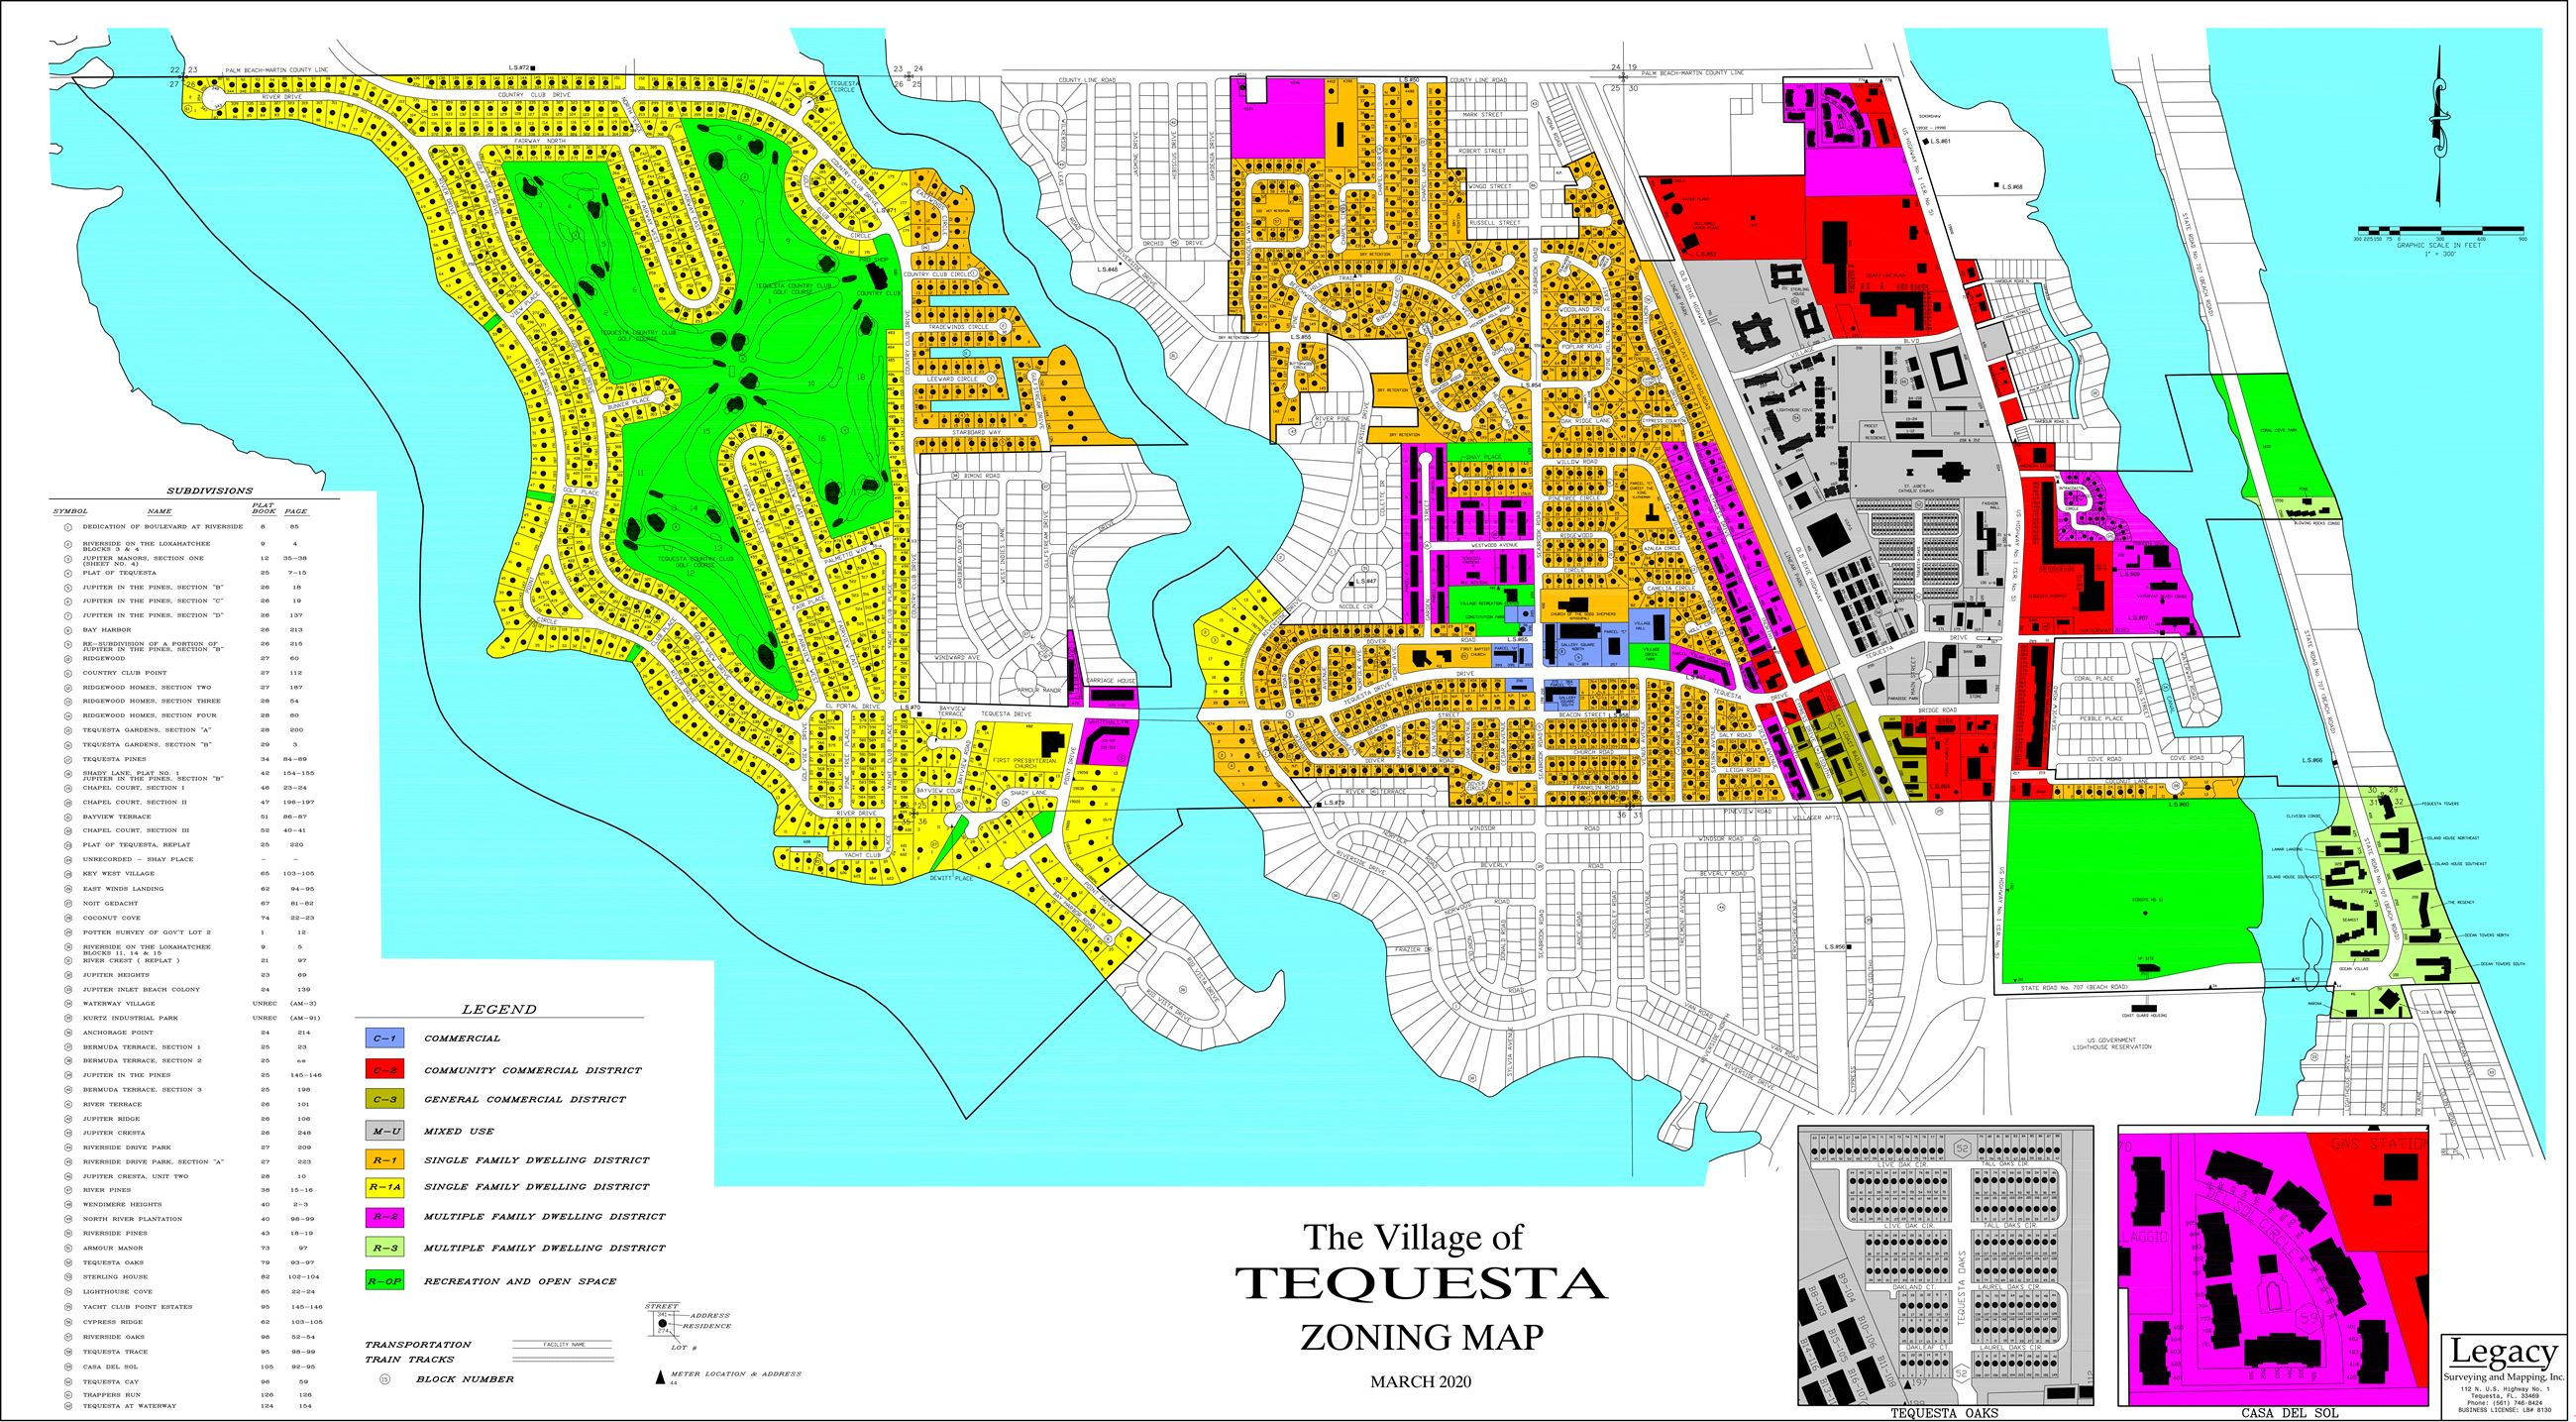 TEQUESTA COLOR WALL MAP MARCH 2020 28x54